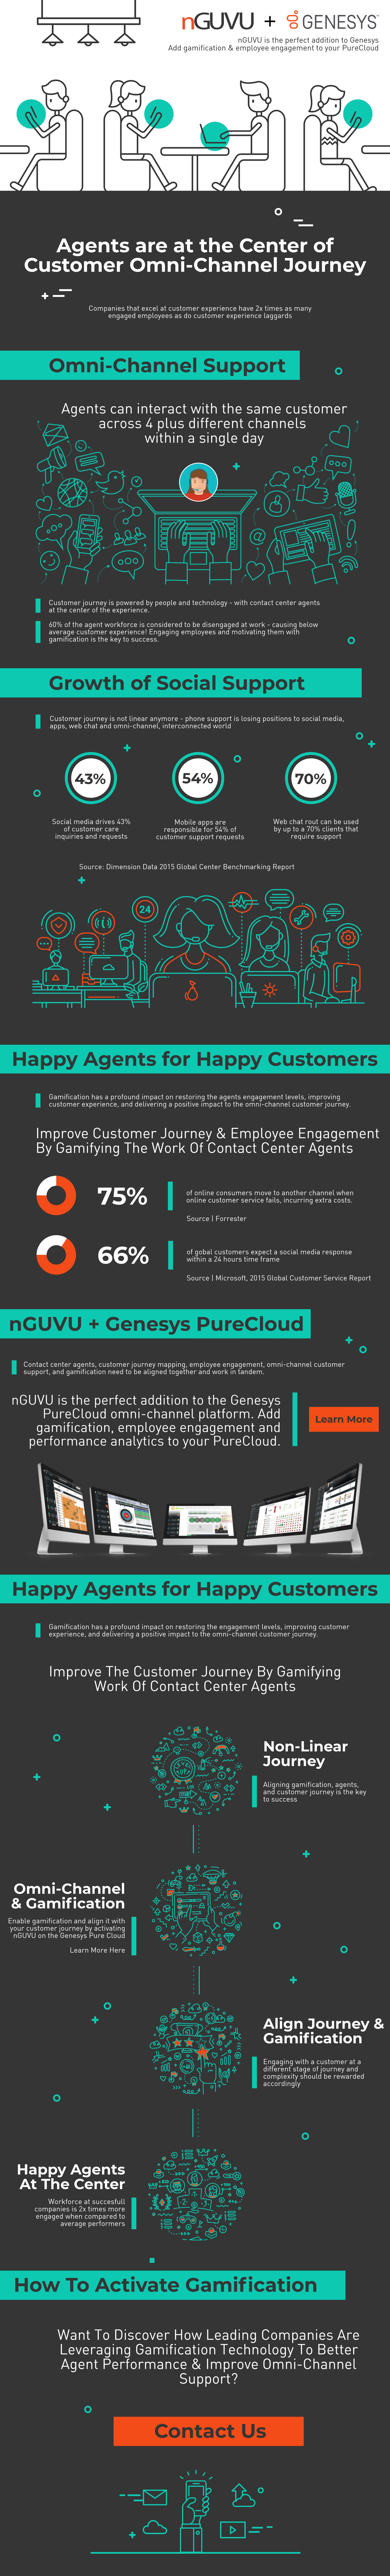 omnichannel customer care and gamification and employee engagement